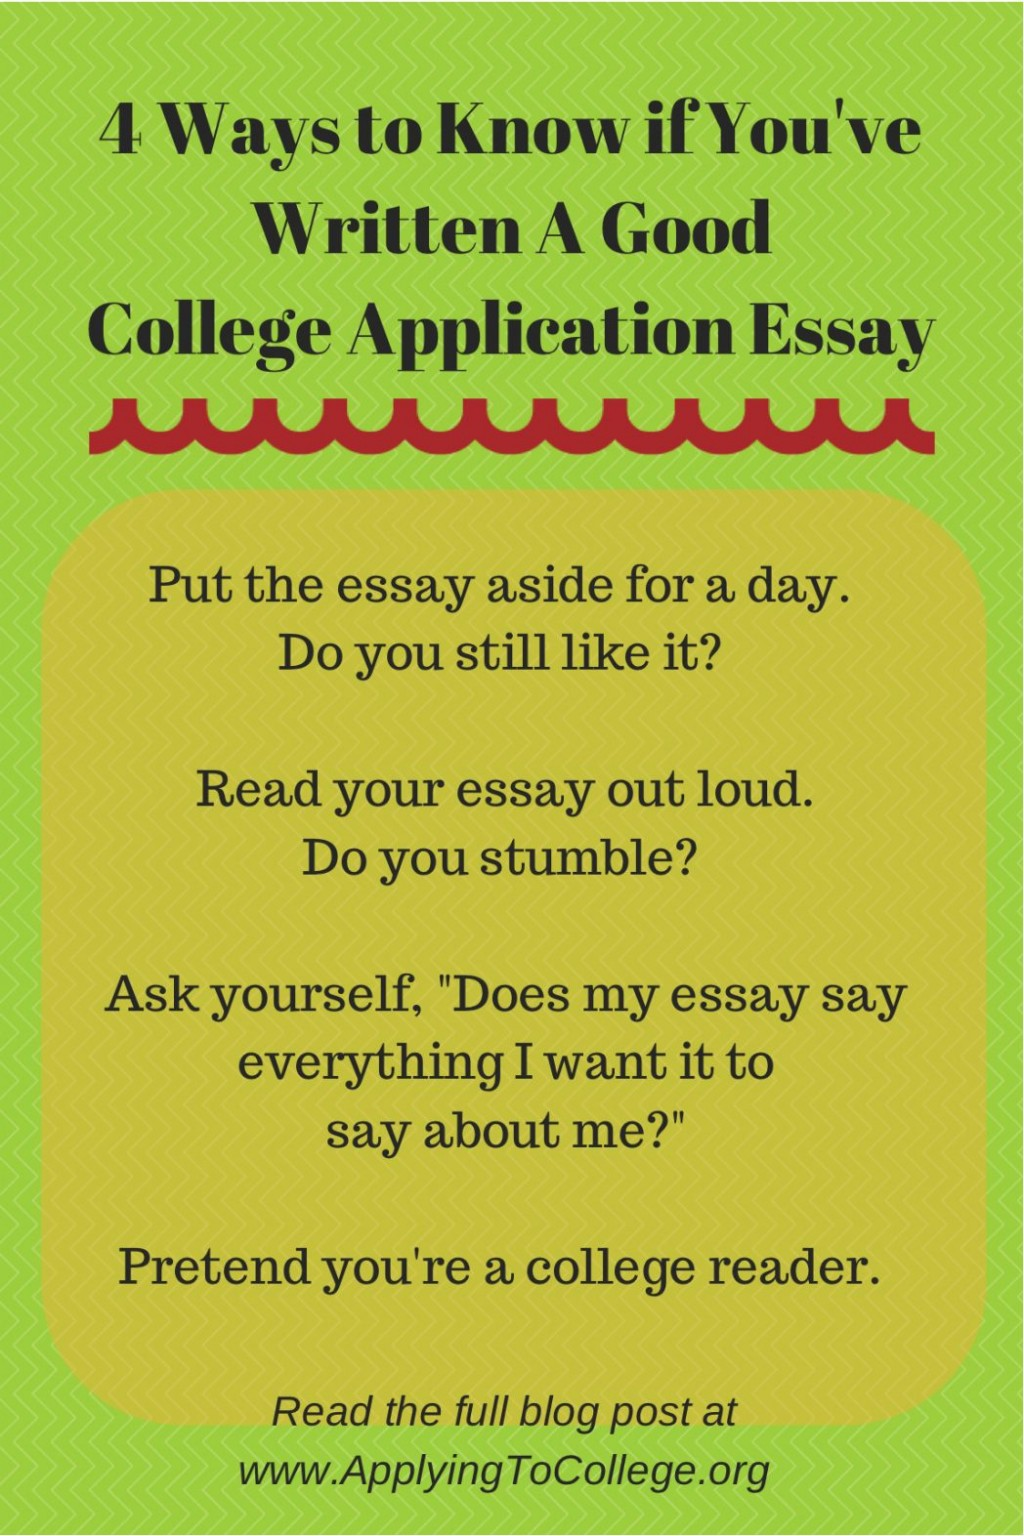 024 Write My Essay For Me Free Example Research Paper Comparative Literature 4ways To Know If Youve Written Online Uk Reviews Cheap Formidable College Large